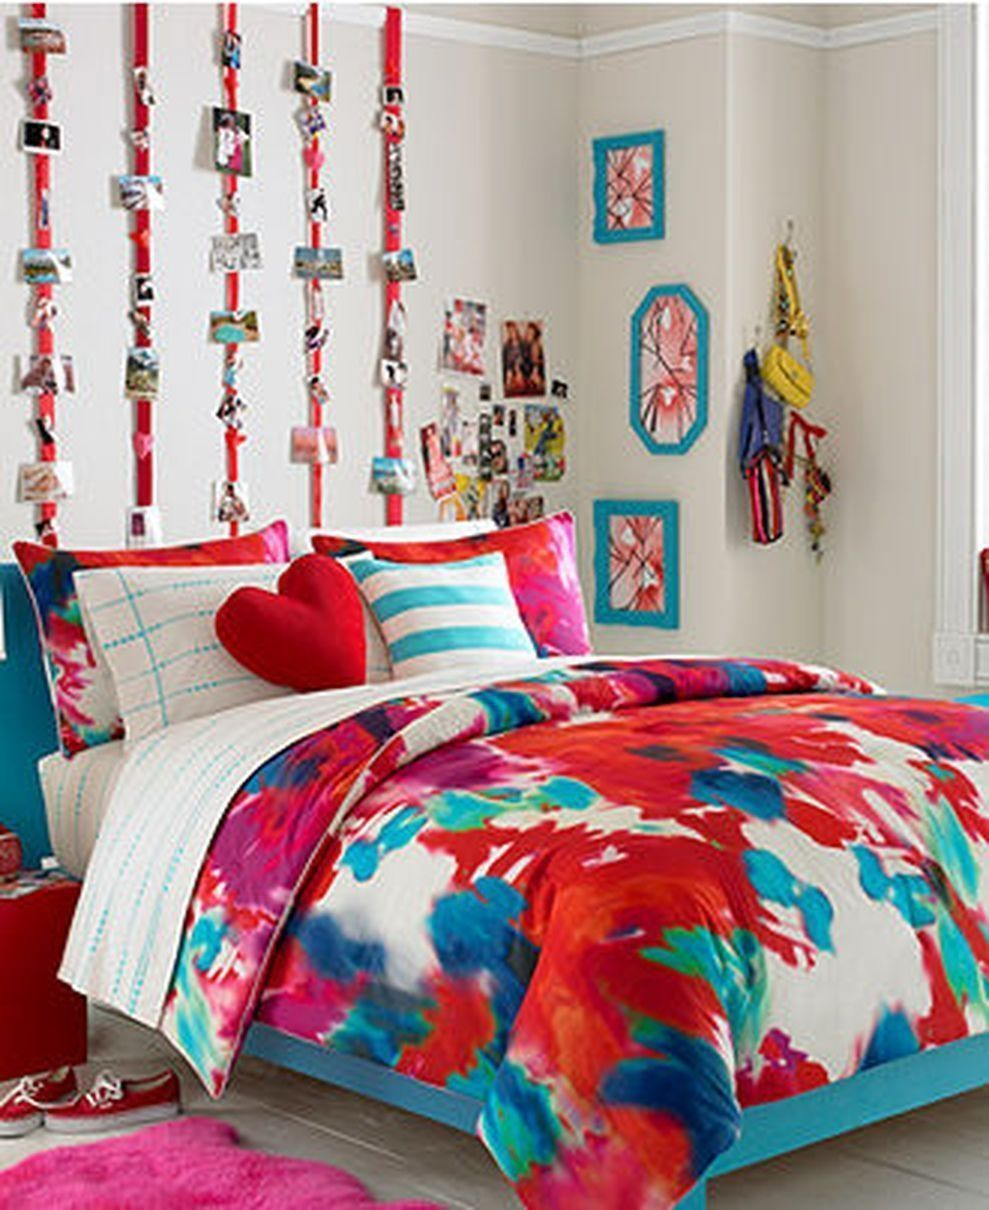 Awesome ideas for teenage girls bedroom design